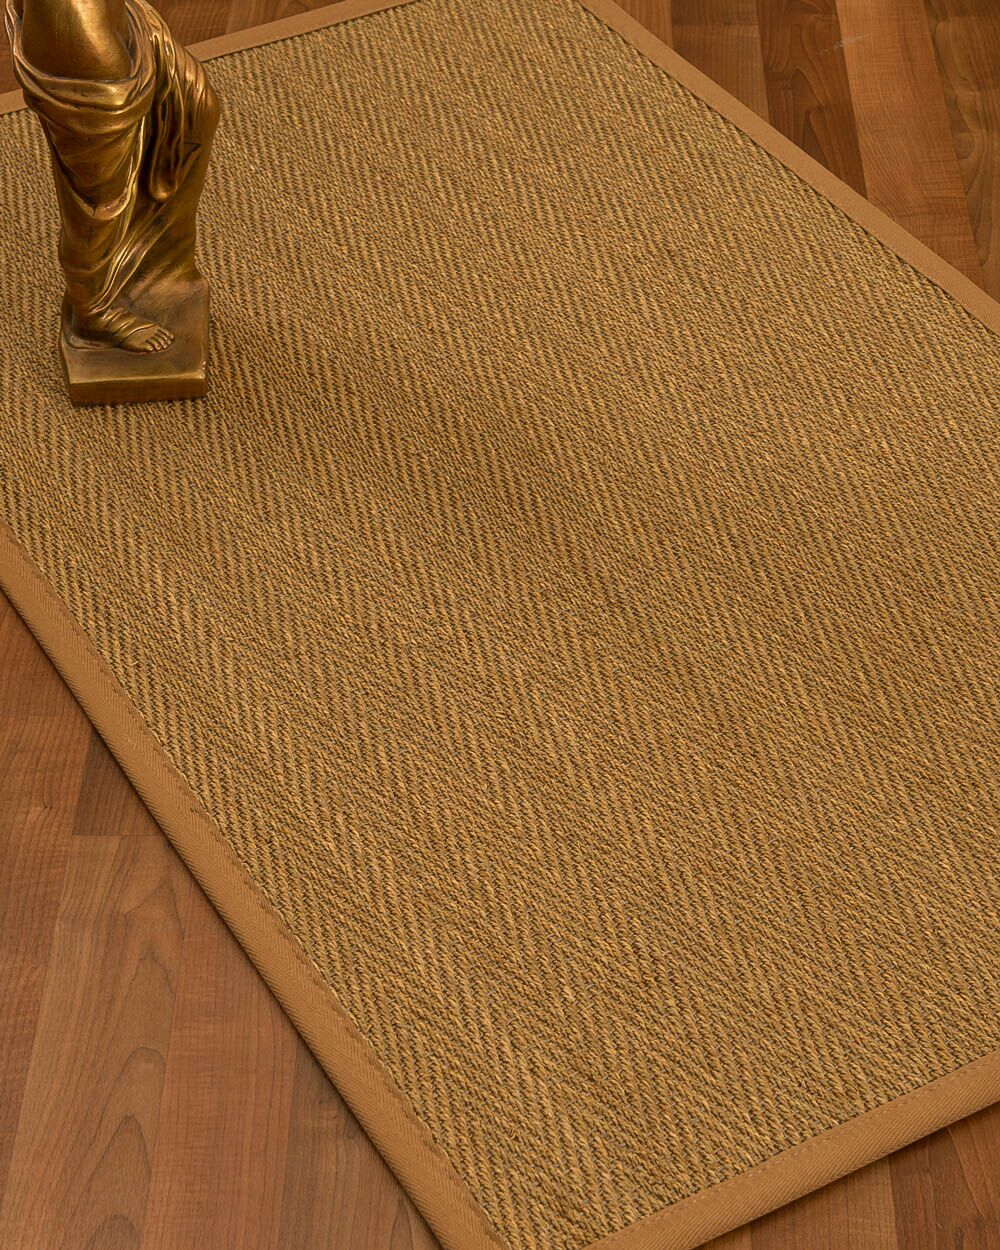 Mahaney Border Hand-Woven Beige/Sienna Area Rug Rug Size: Rectangle 8' x 10', Rug Pad Included: Yes